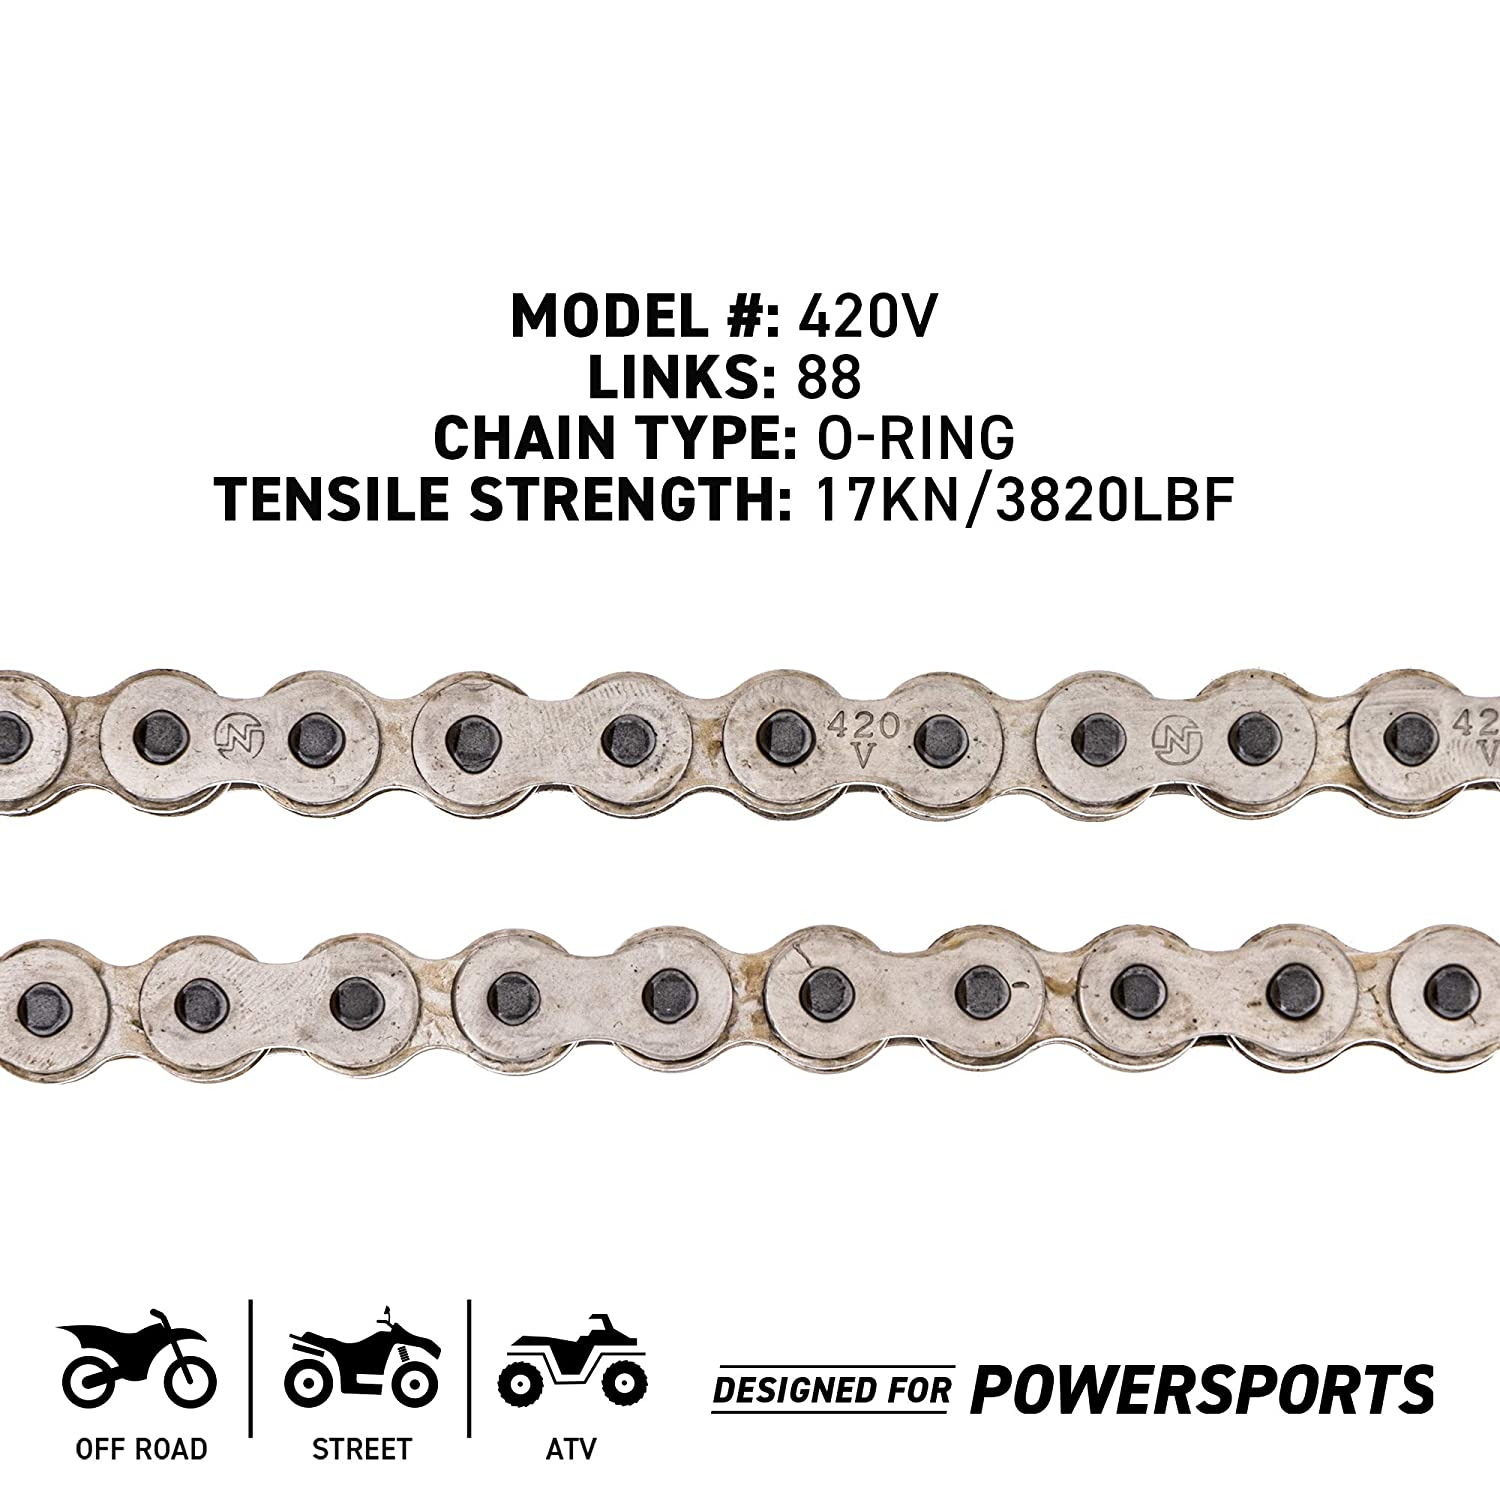 NICHE 420 Drive Chain 132 Links O-Ring With Connecting Master Link for Motorcycle ATV Dirt Bike